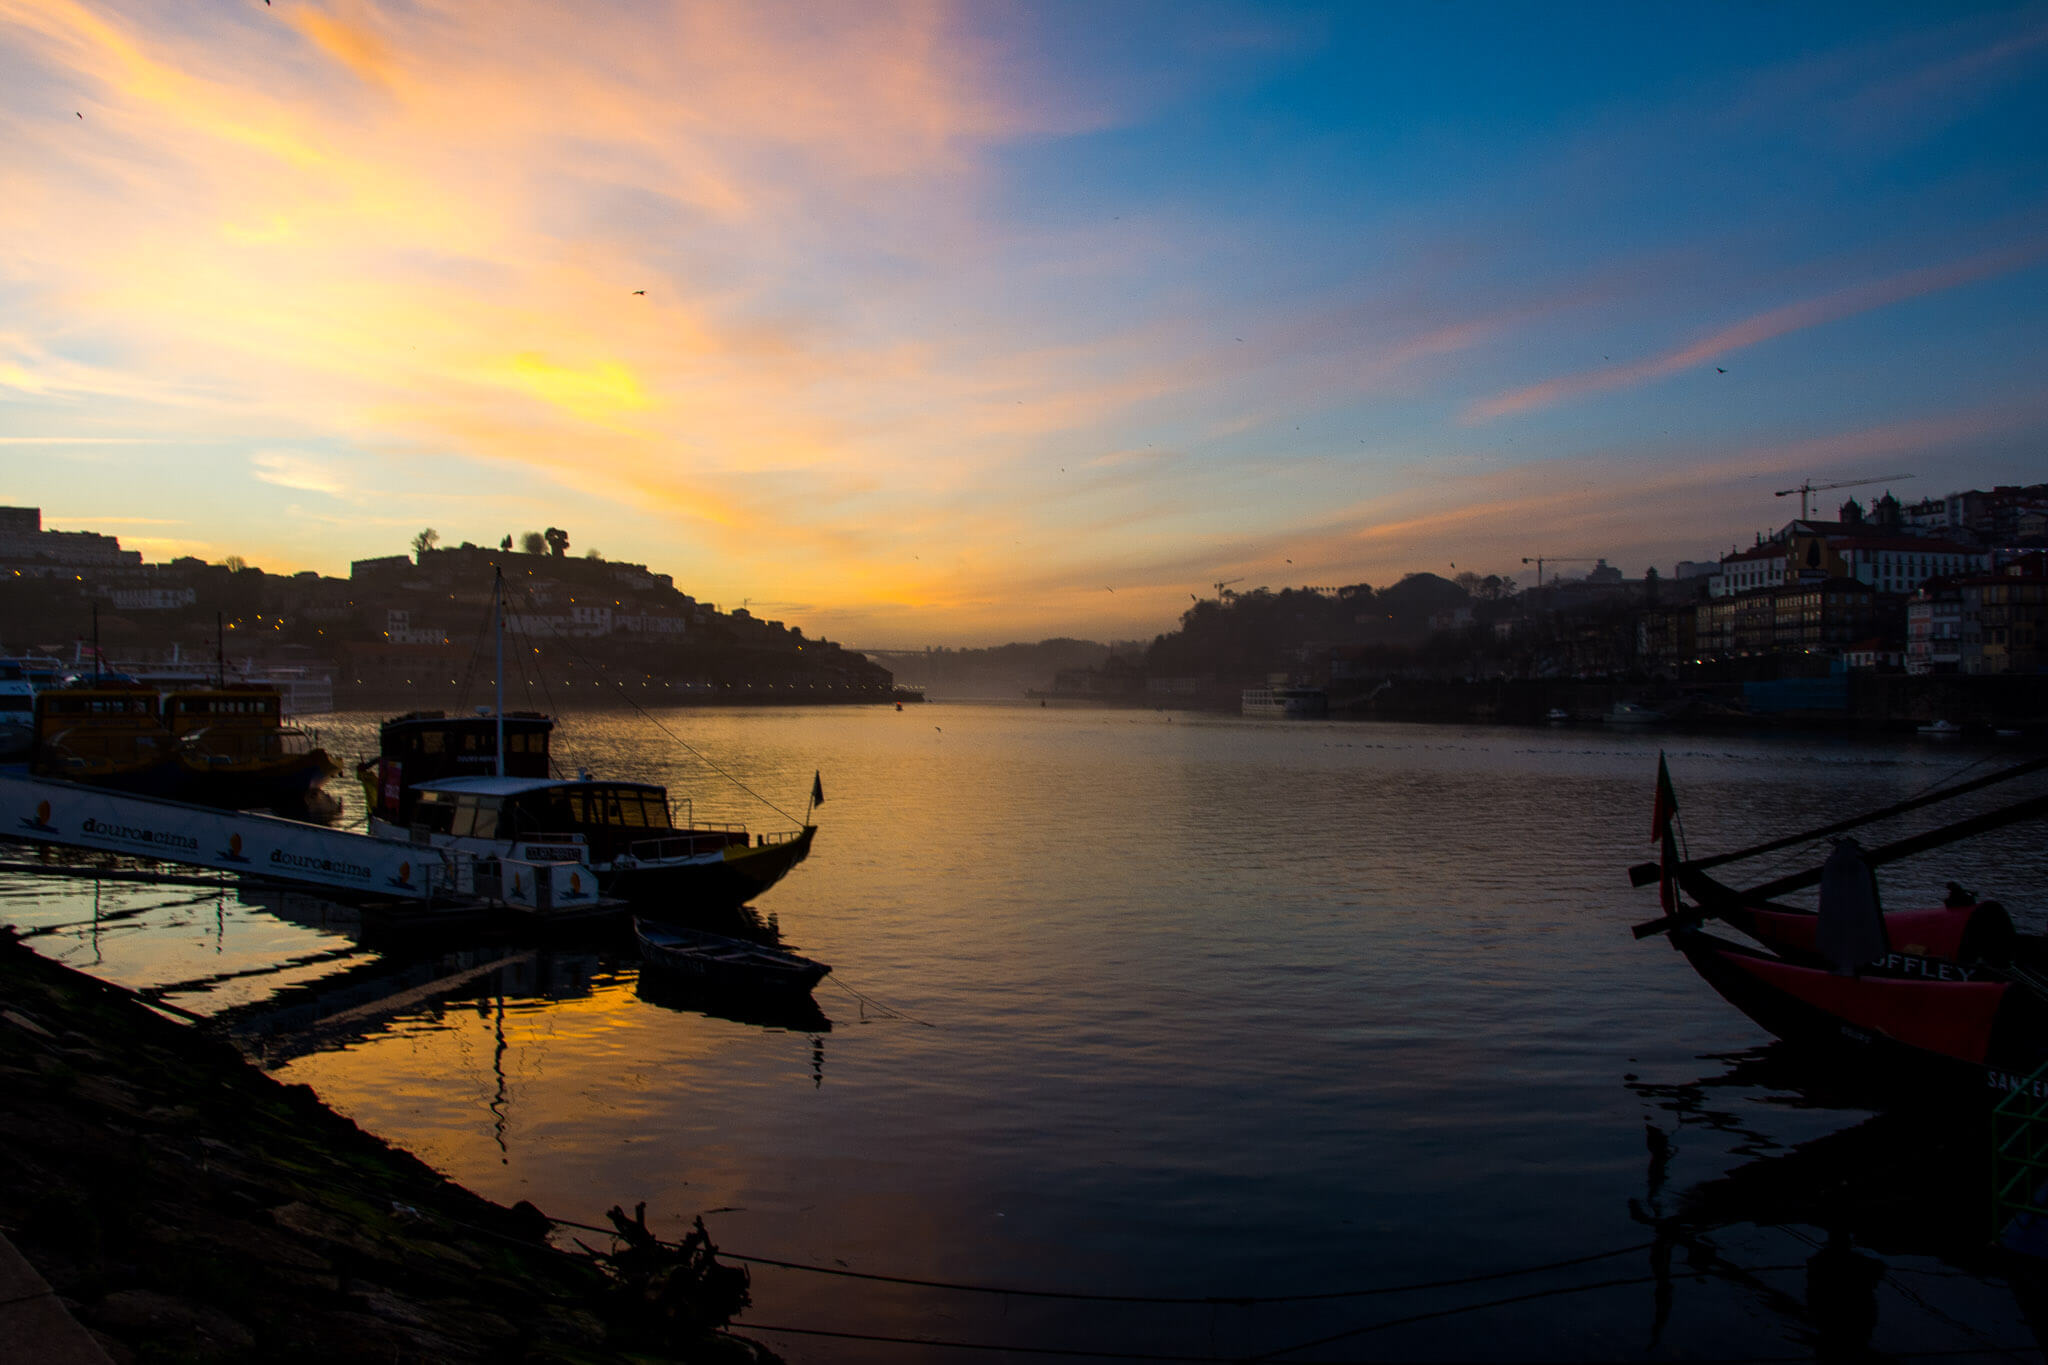 Sunset at Porto, Portugal. Douro River